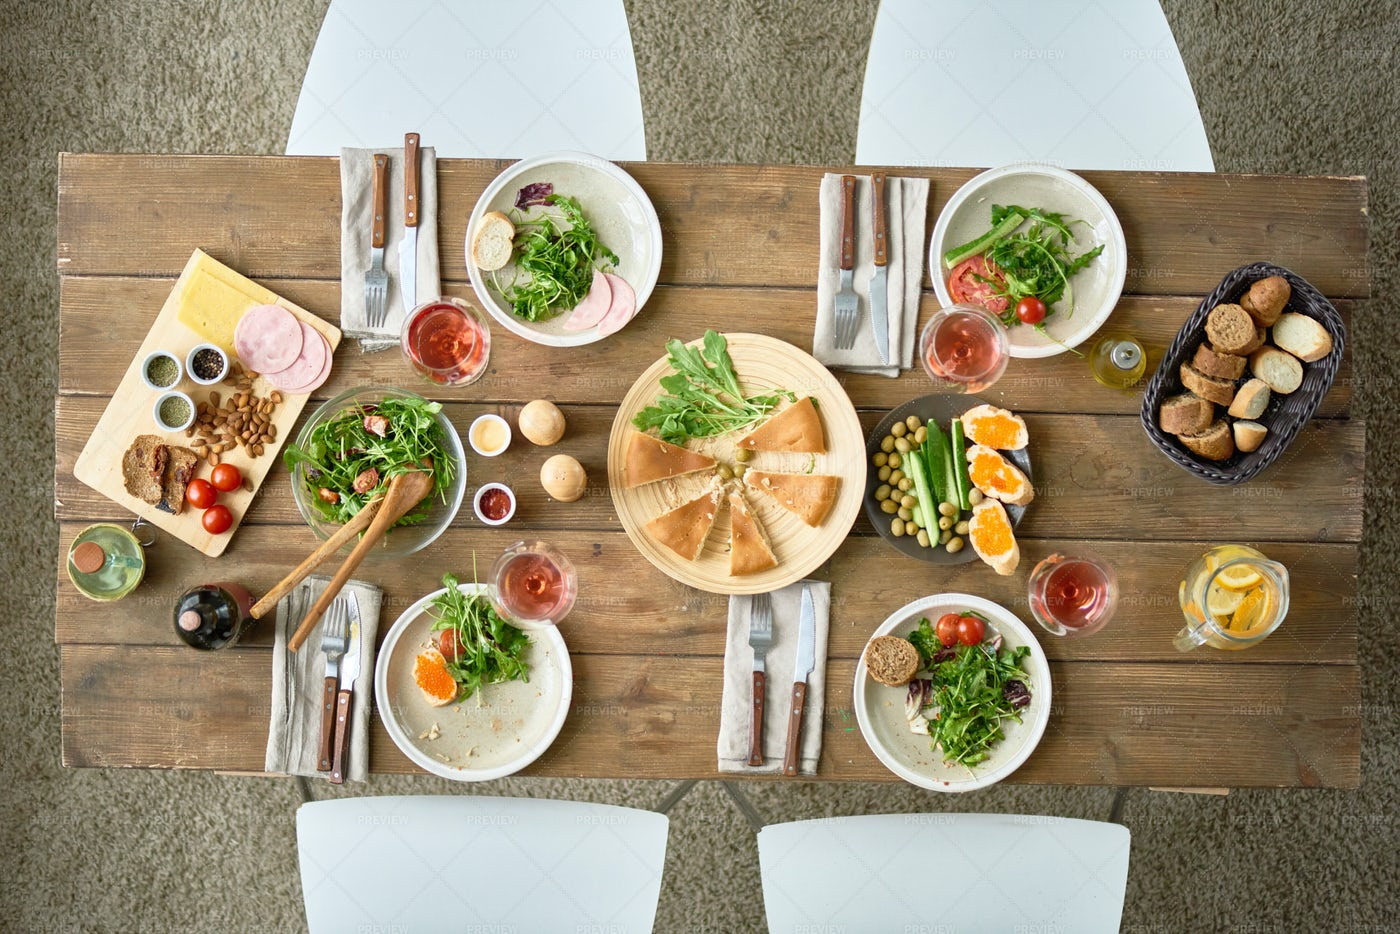 Above View Of Festive Dinner Table: Stock Photos